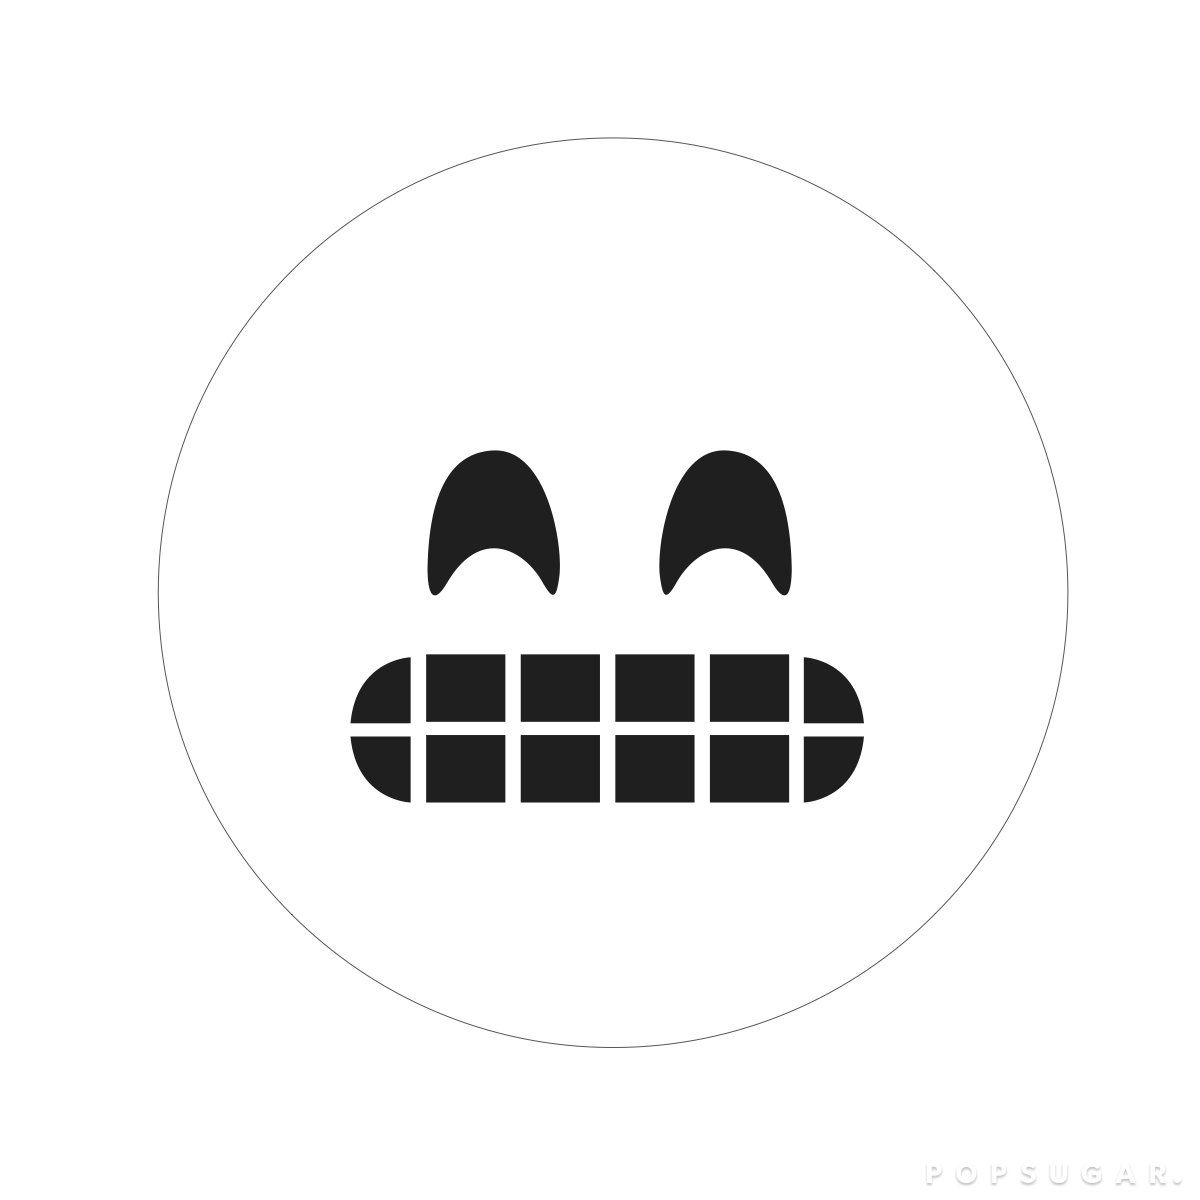 Smiling Face With Open Mouth and Smiling Eyes | Smiling eyes ...